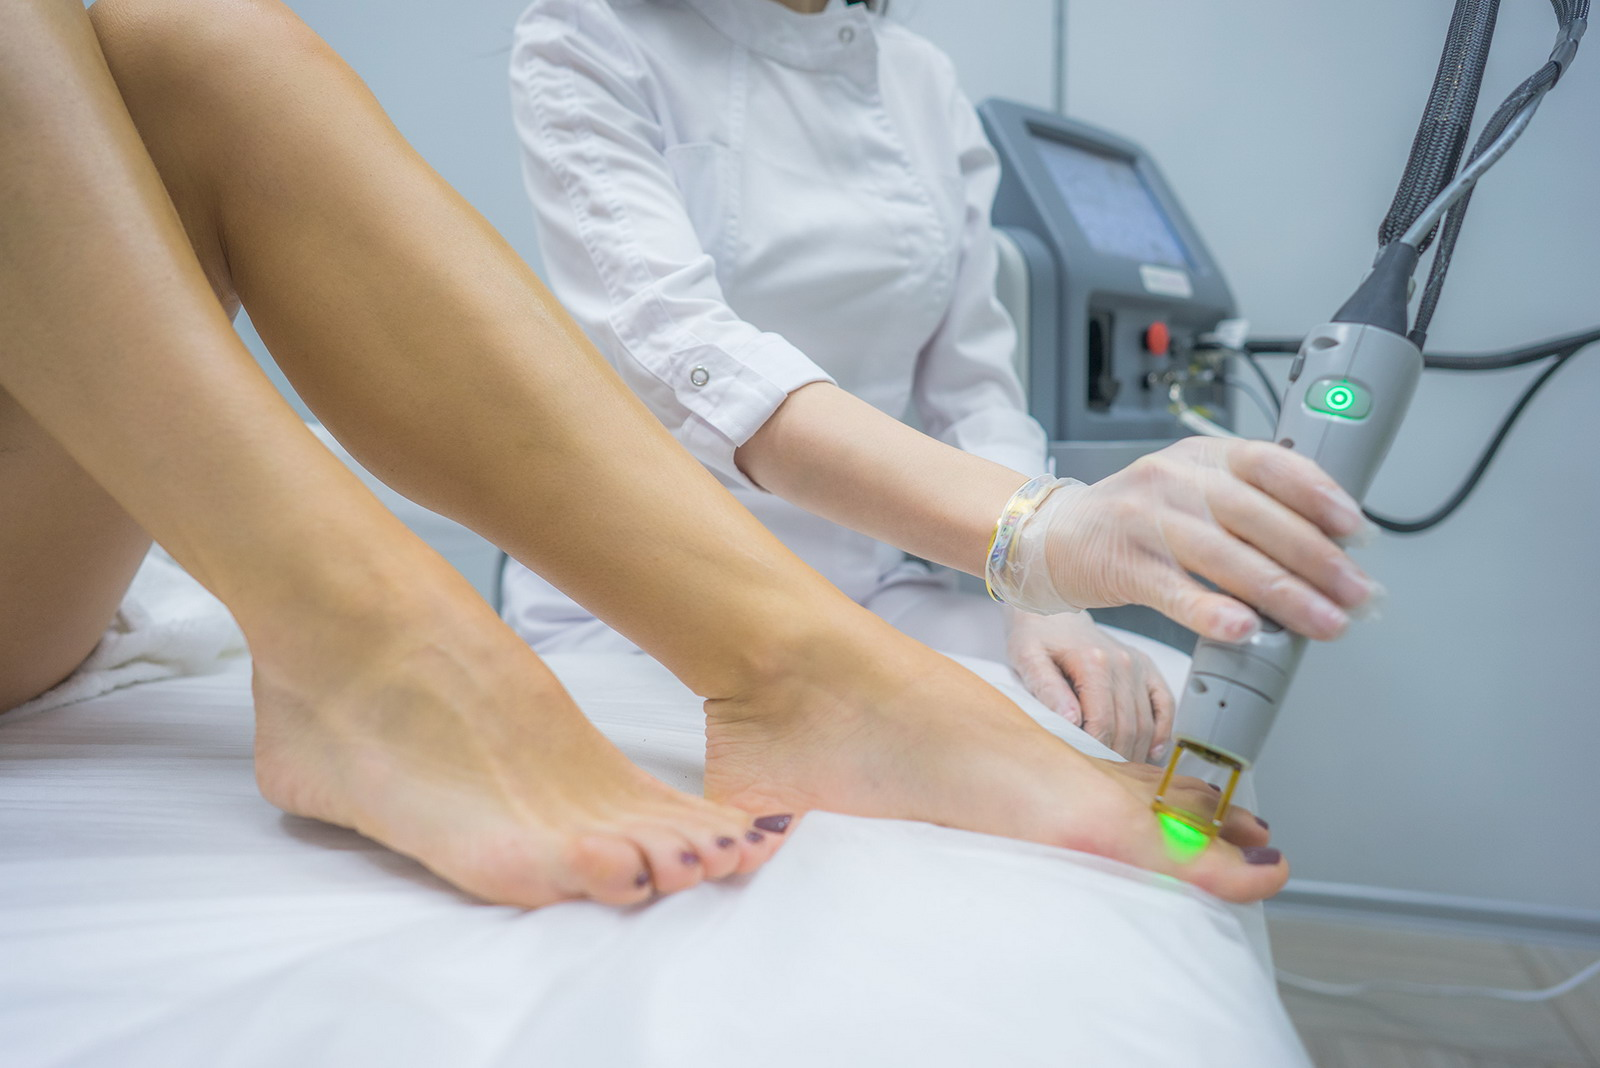 Pros and cons of laser hair removal